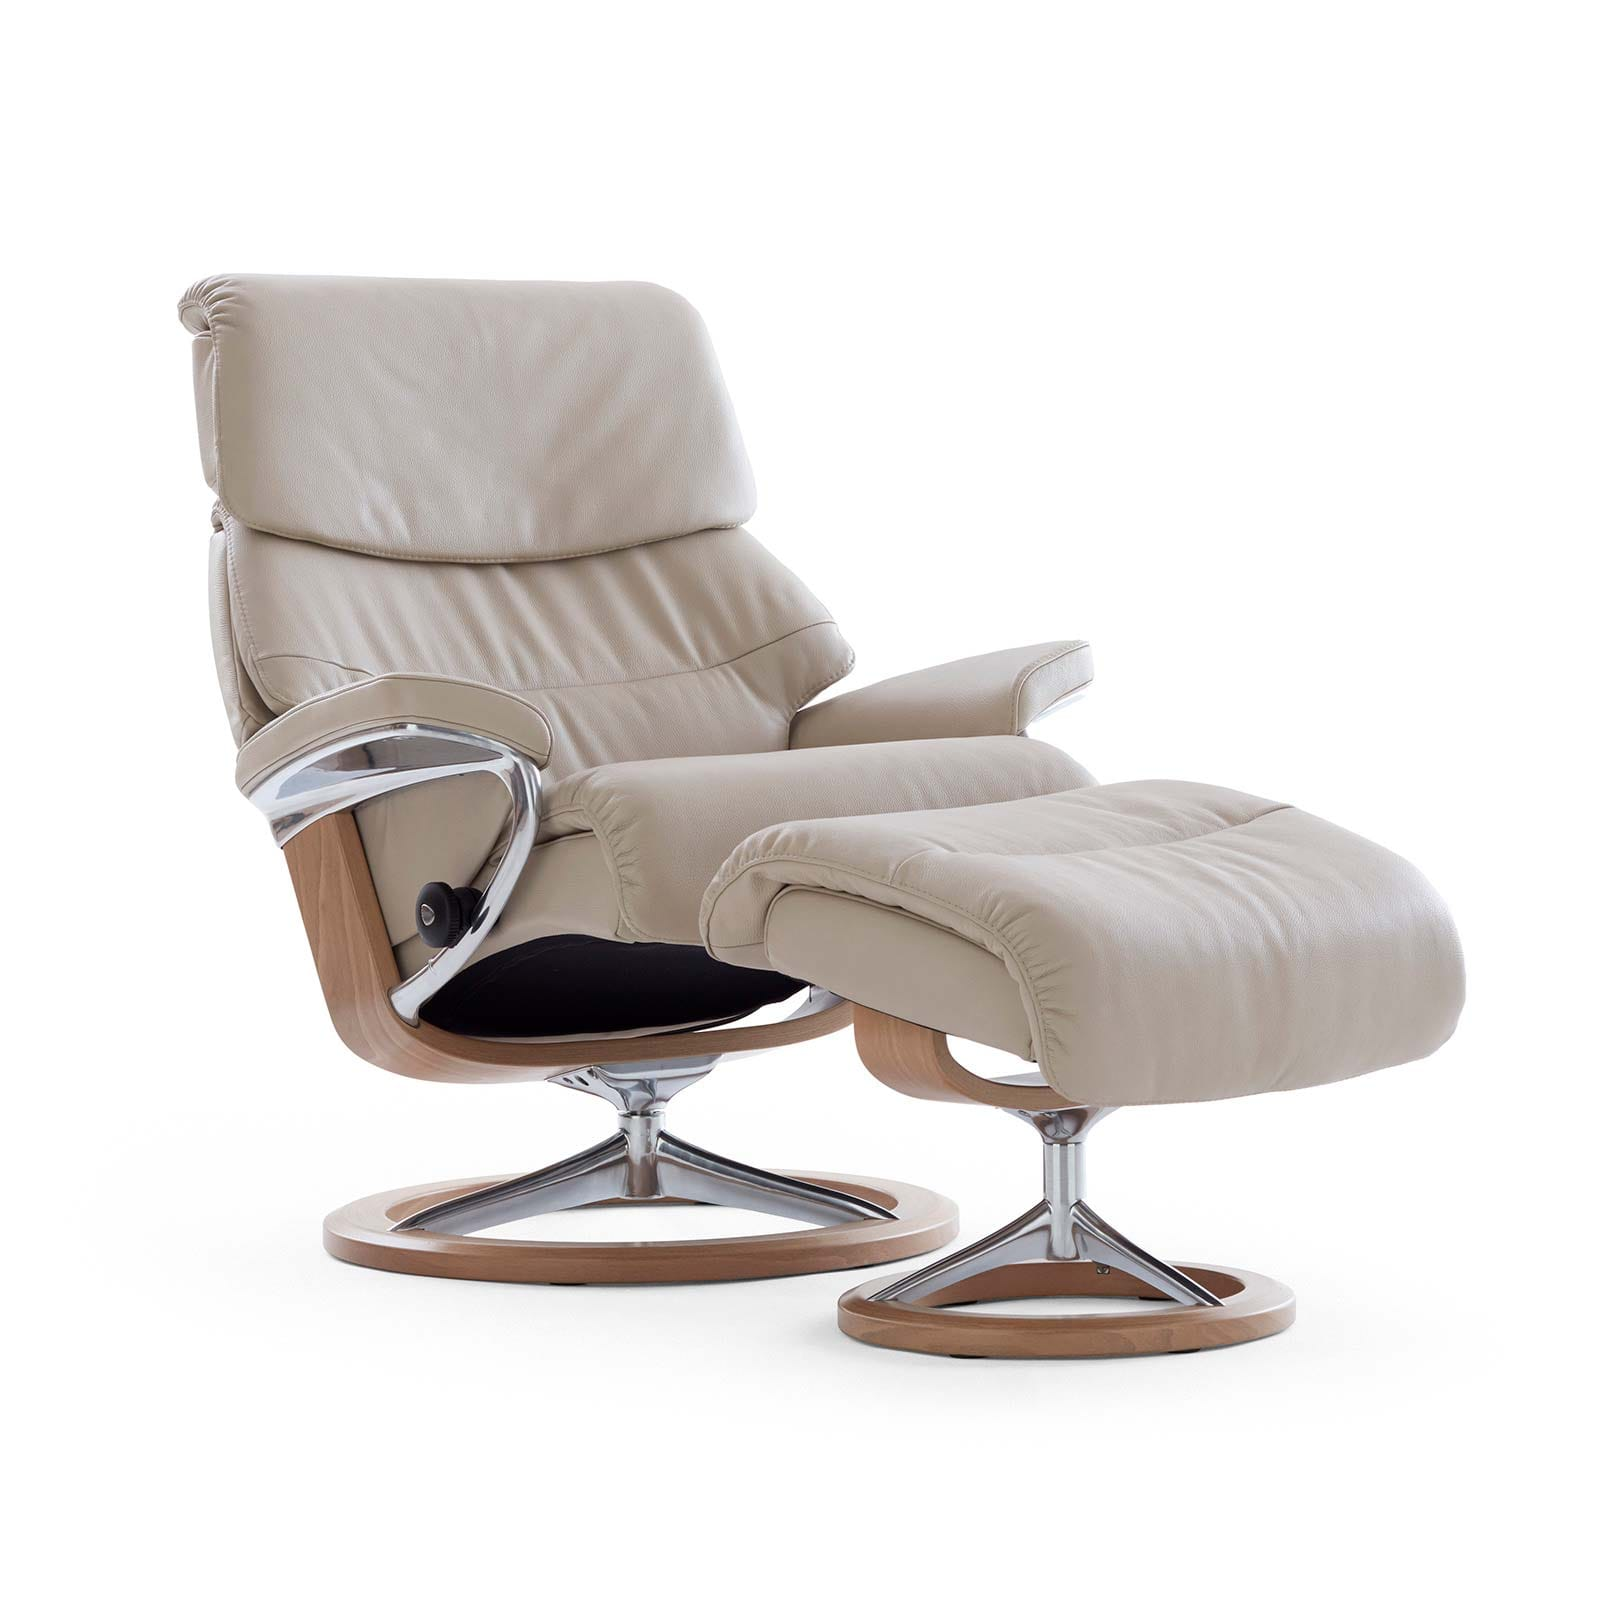 Stressless Paloma Stressless Sessel Capri Light Grey Paloma Signature Natur Mit Hocker M